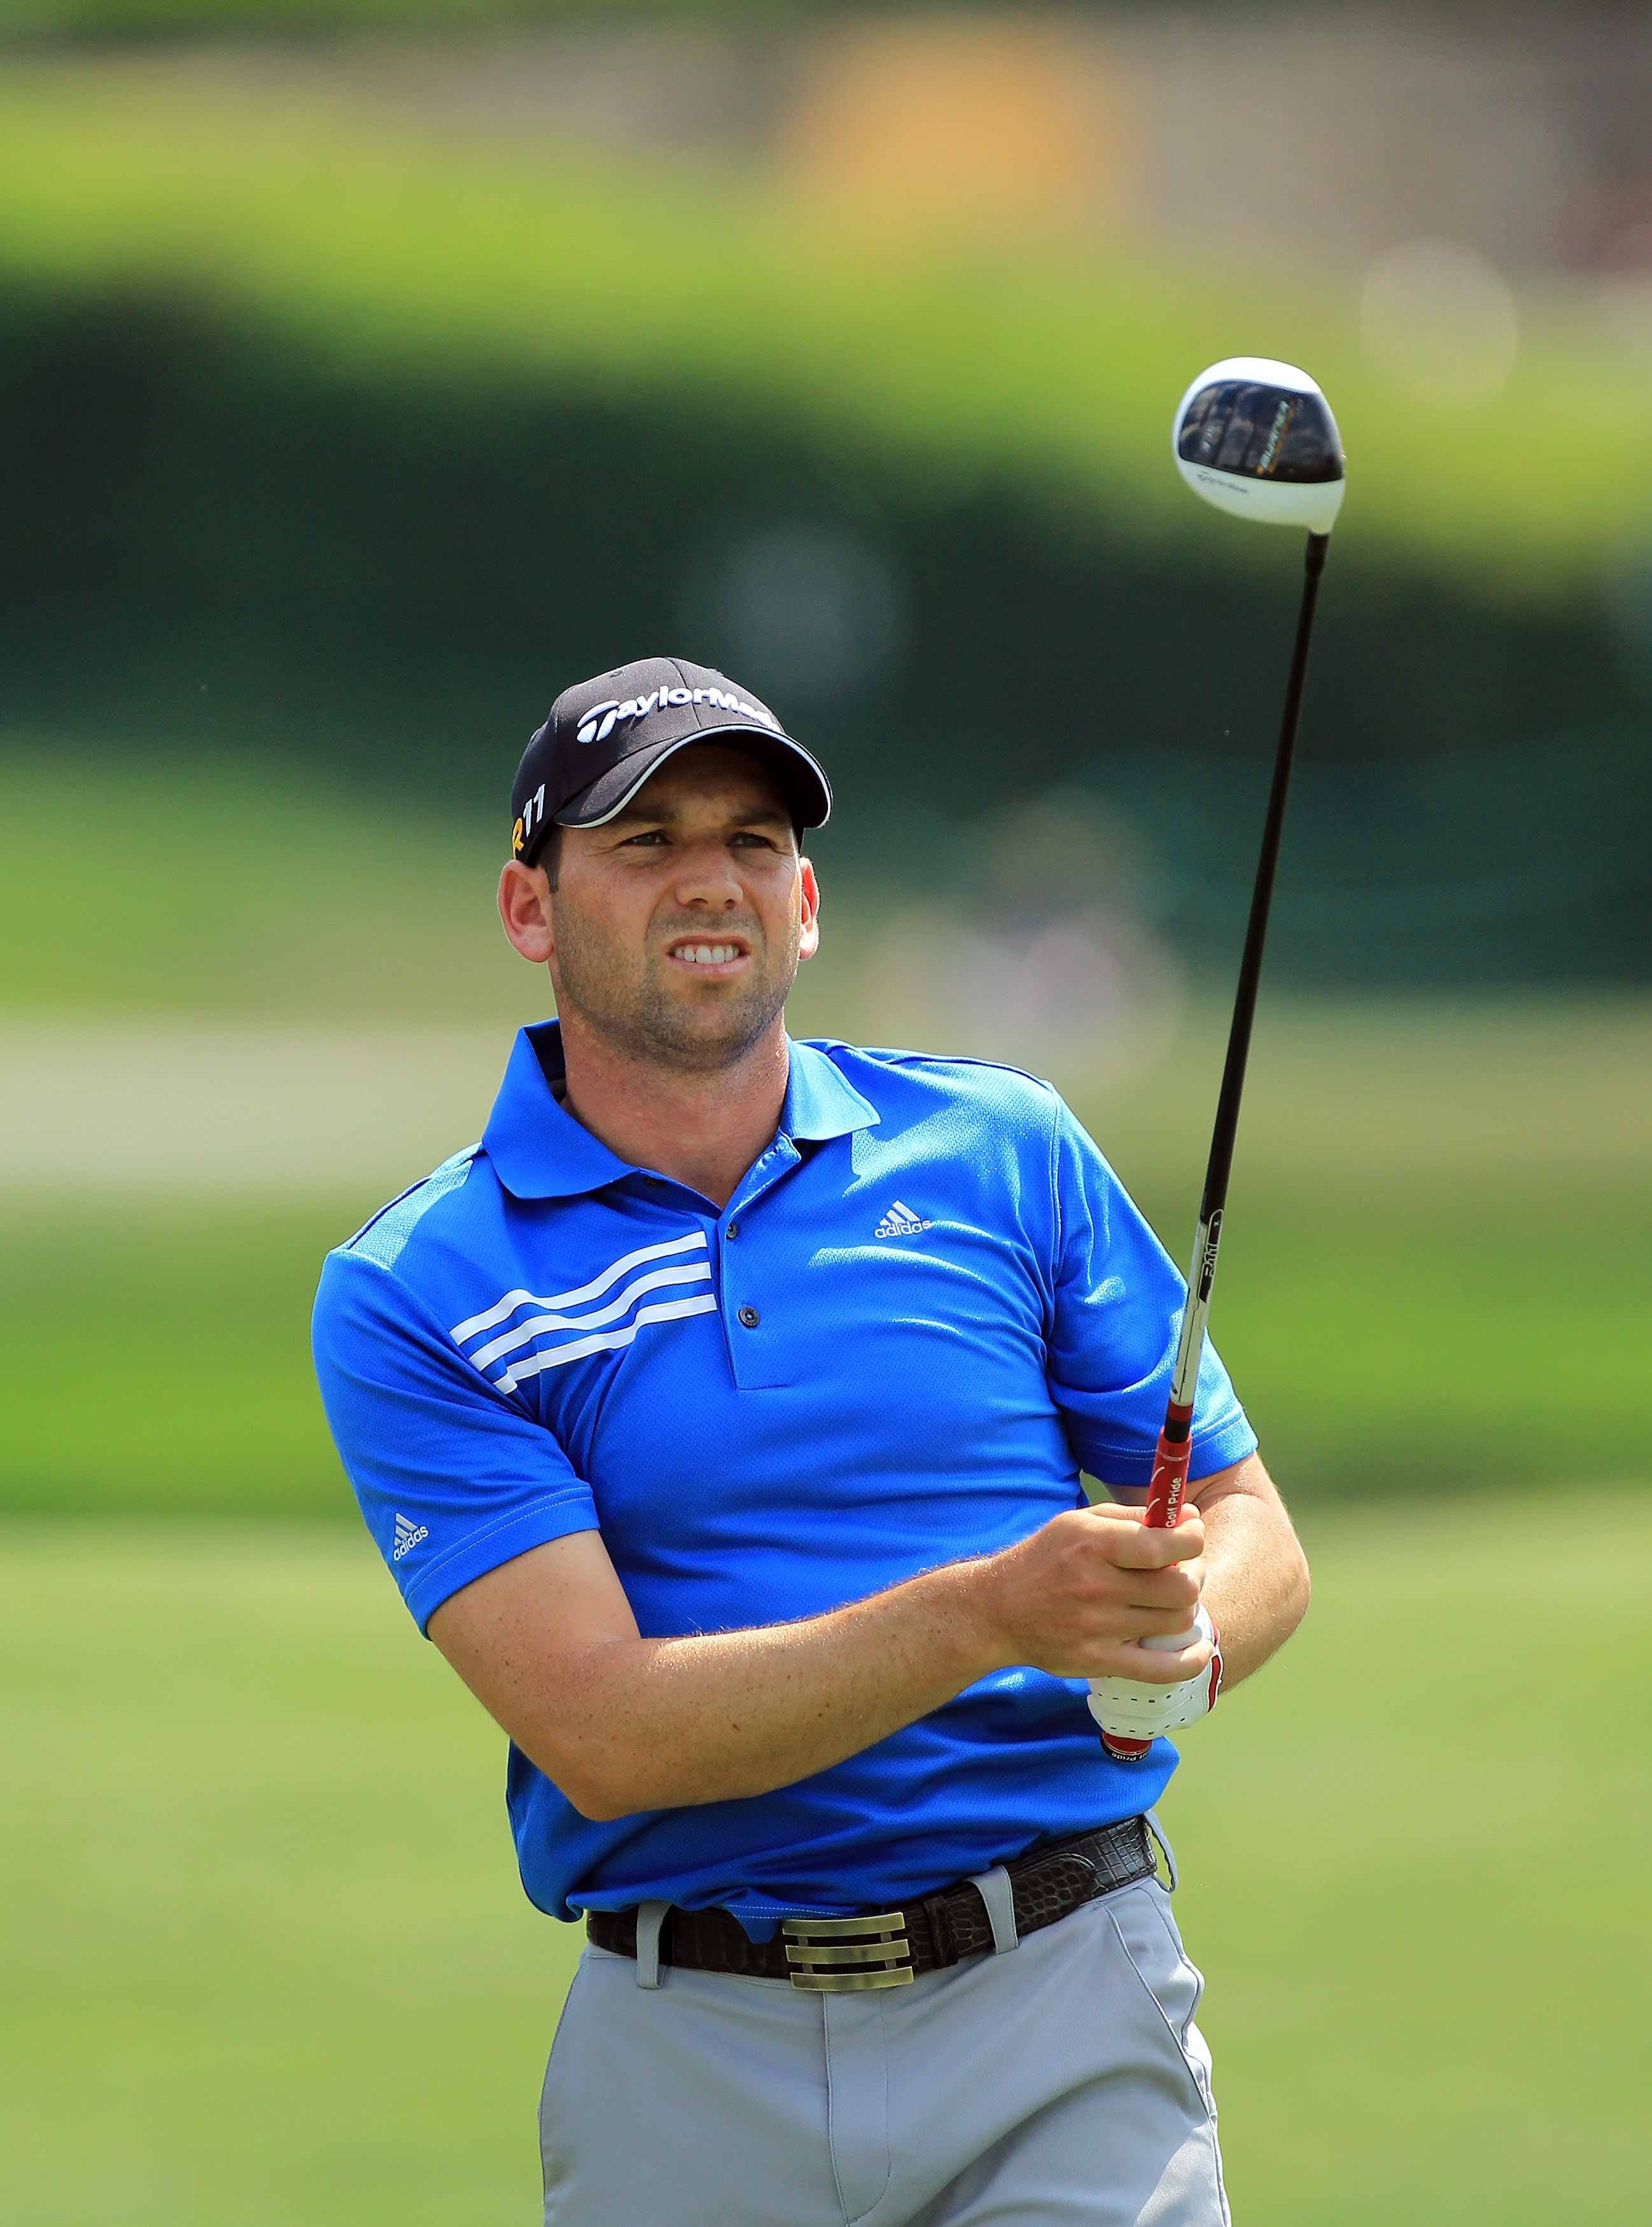 ORLANDO, FL - MARCH 27:  Sergio Garcia of Spain plays his tee shot on the 16th hole during the final round of the 2011 Arnold Palmer Invitational presented by Mastercard at the Bay Hill Lodge and Country Club on March 27, 2011 in Orlando, Florida.  (Photo